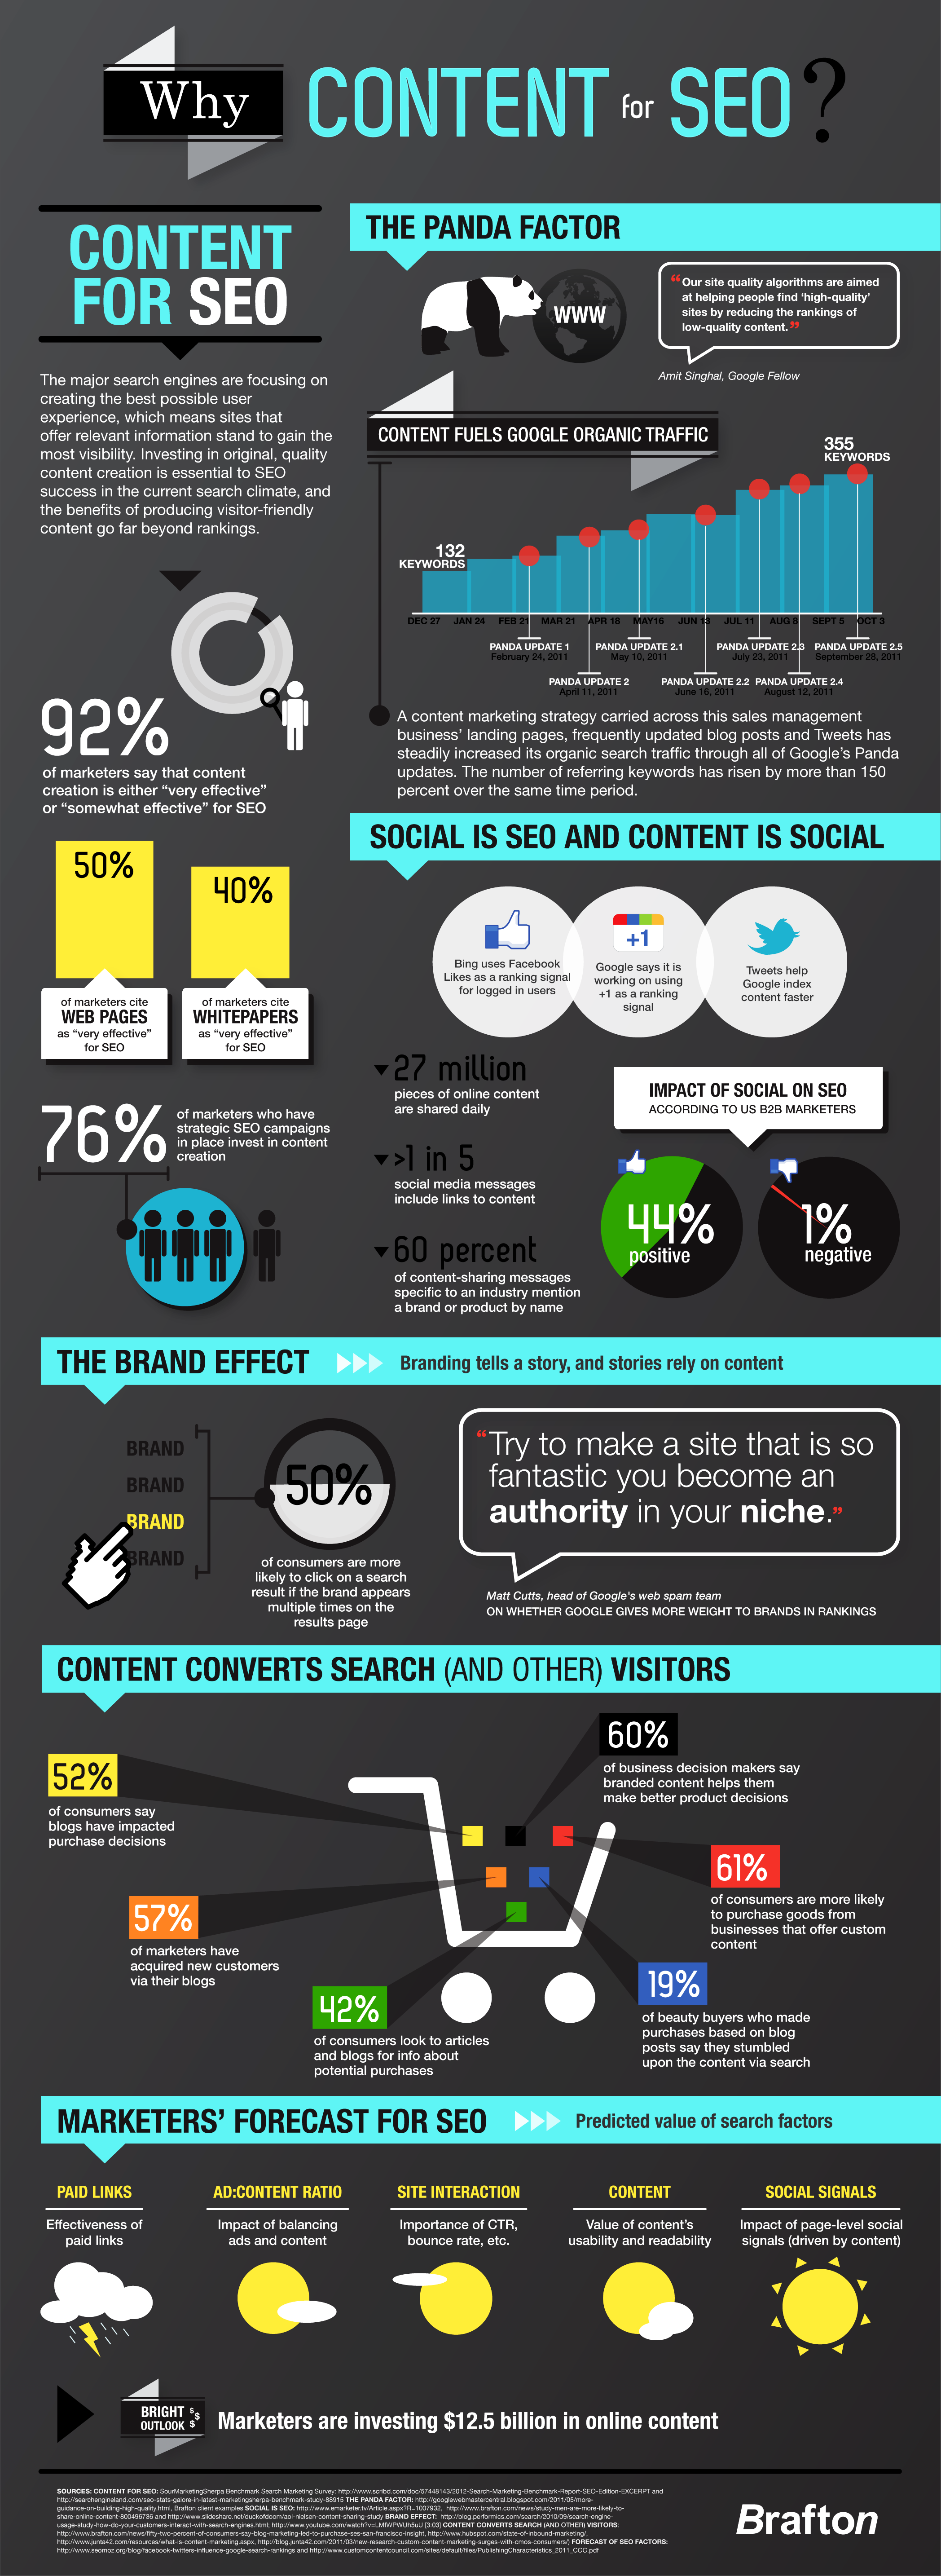 Why Content for SEO? #infographic #marketing